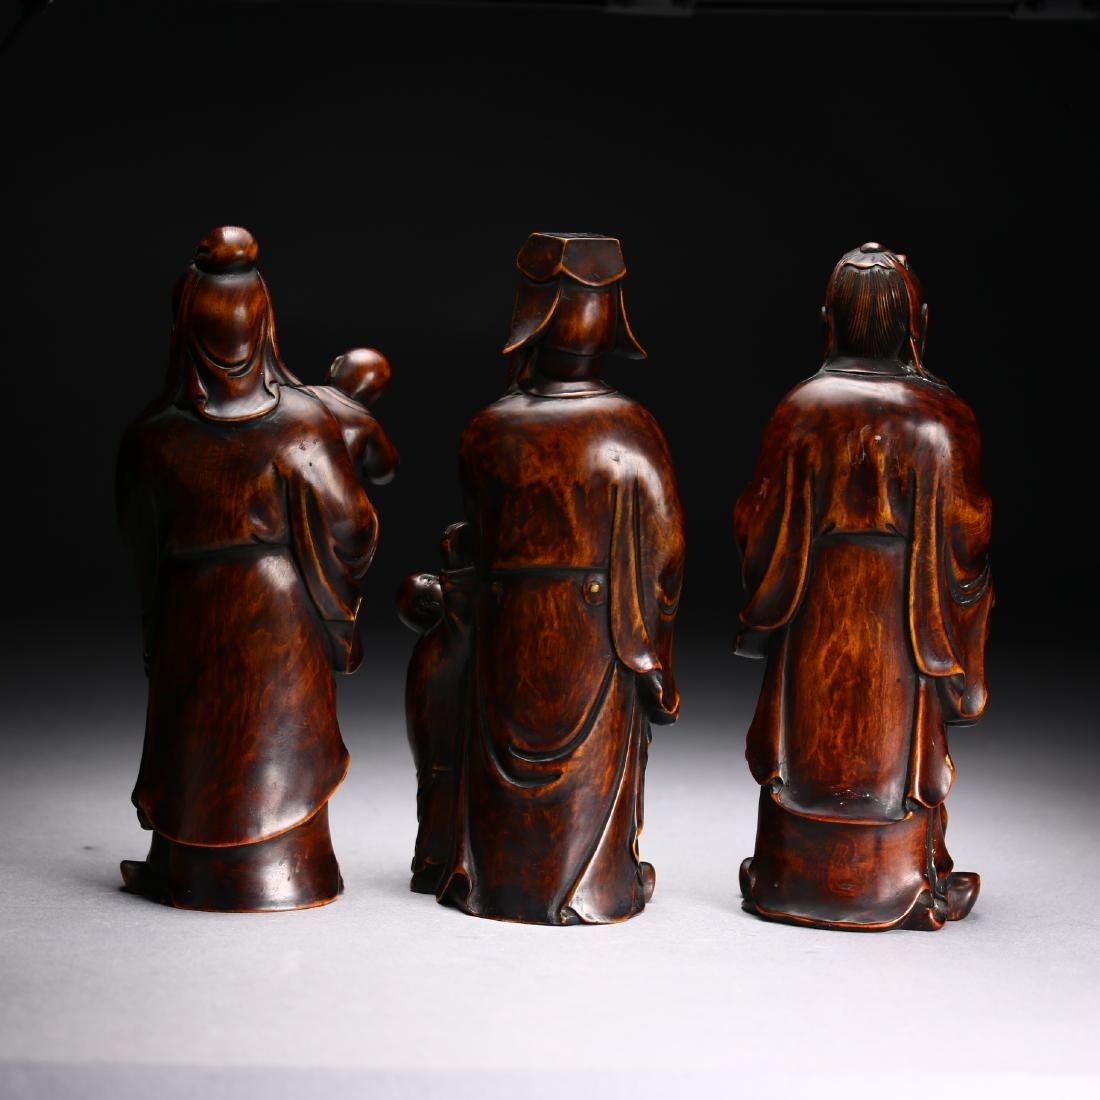 Three Huangyang Wood Carved Figures,Qing dynasty - 2